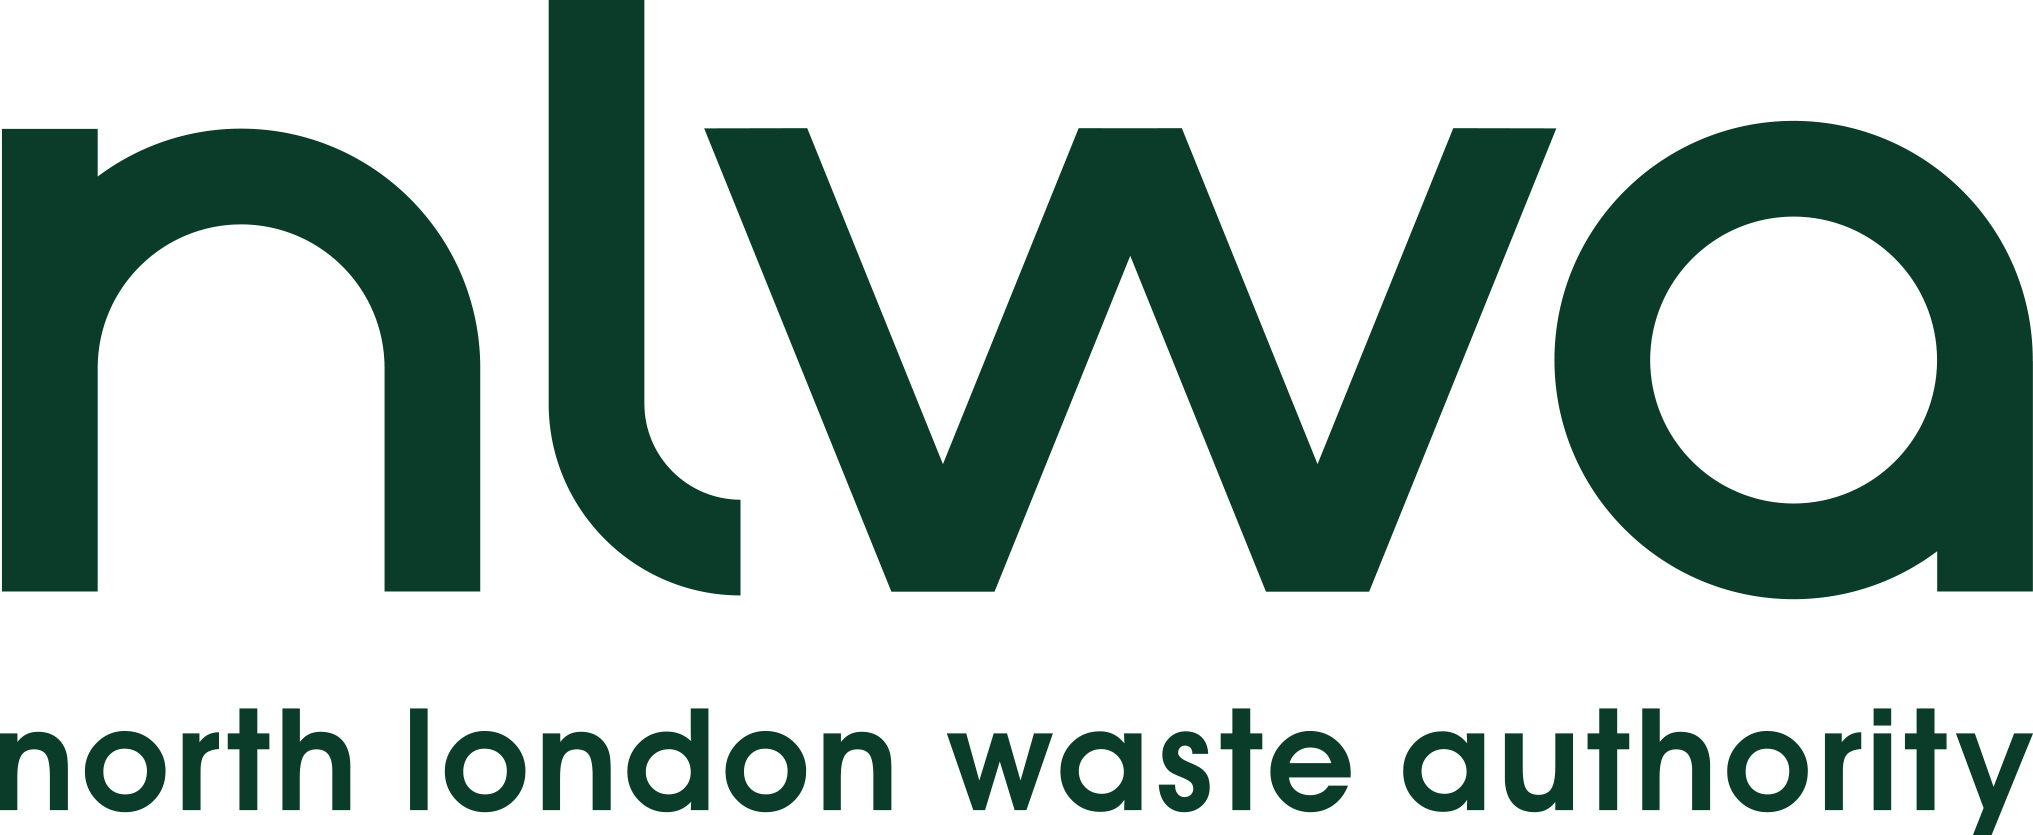 North London Waste Authority - The North London Waste Authority (NLWA) is made up of seven north London boroughs (Barnet, Camden, Enfield, Hackney, Haringey, Islington and Waltham Forest). Over two million residents live in the NLWA area.NLWA is responsible for helping the seven north London boroughs dispose of the 850,000 tonnes of waste they collect every year. NLWA's aims are to:achieve a 50% recycling rate by 2020reduce the amount of waste sent to landfill to 35% (of 1995 amounts) by 2020